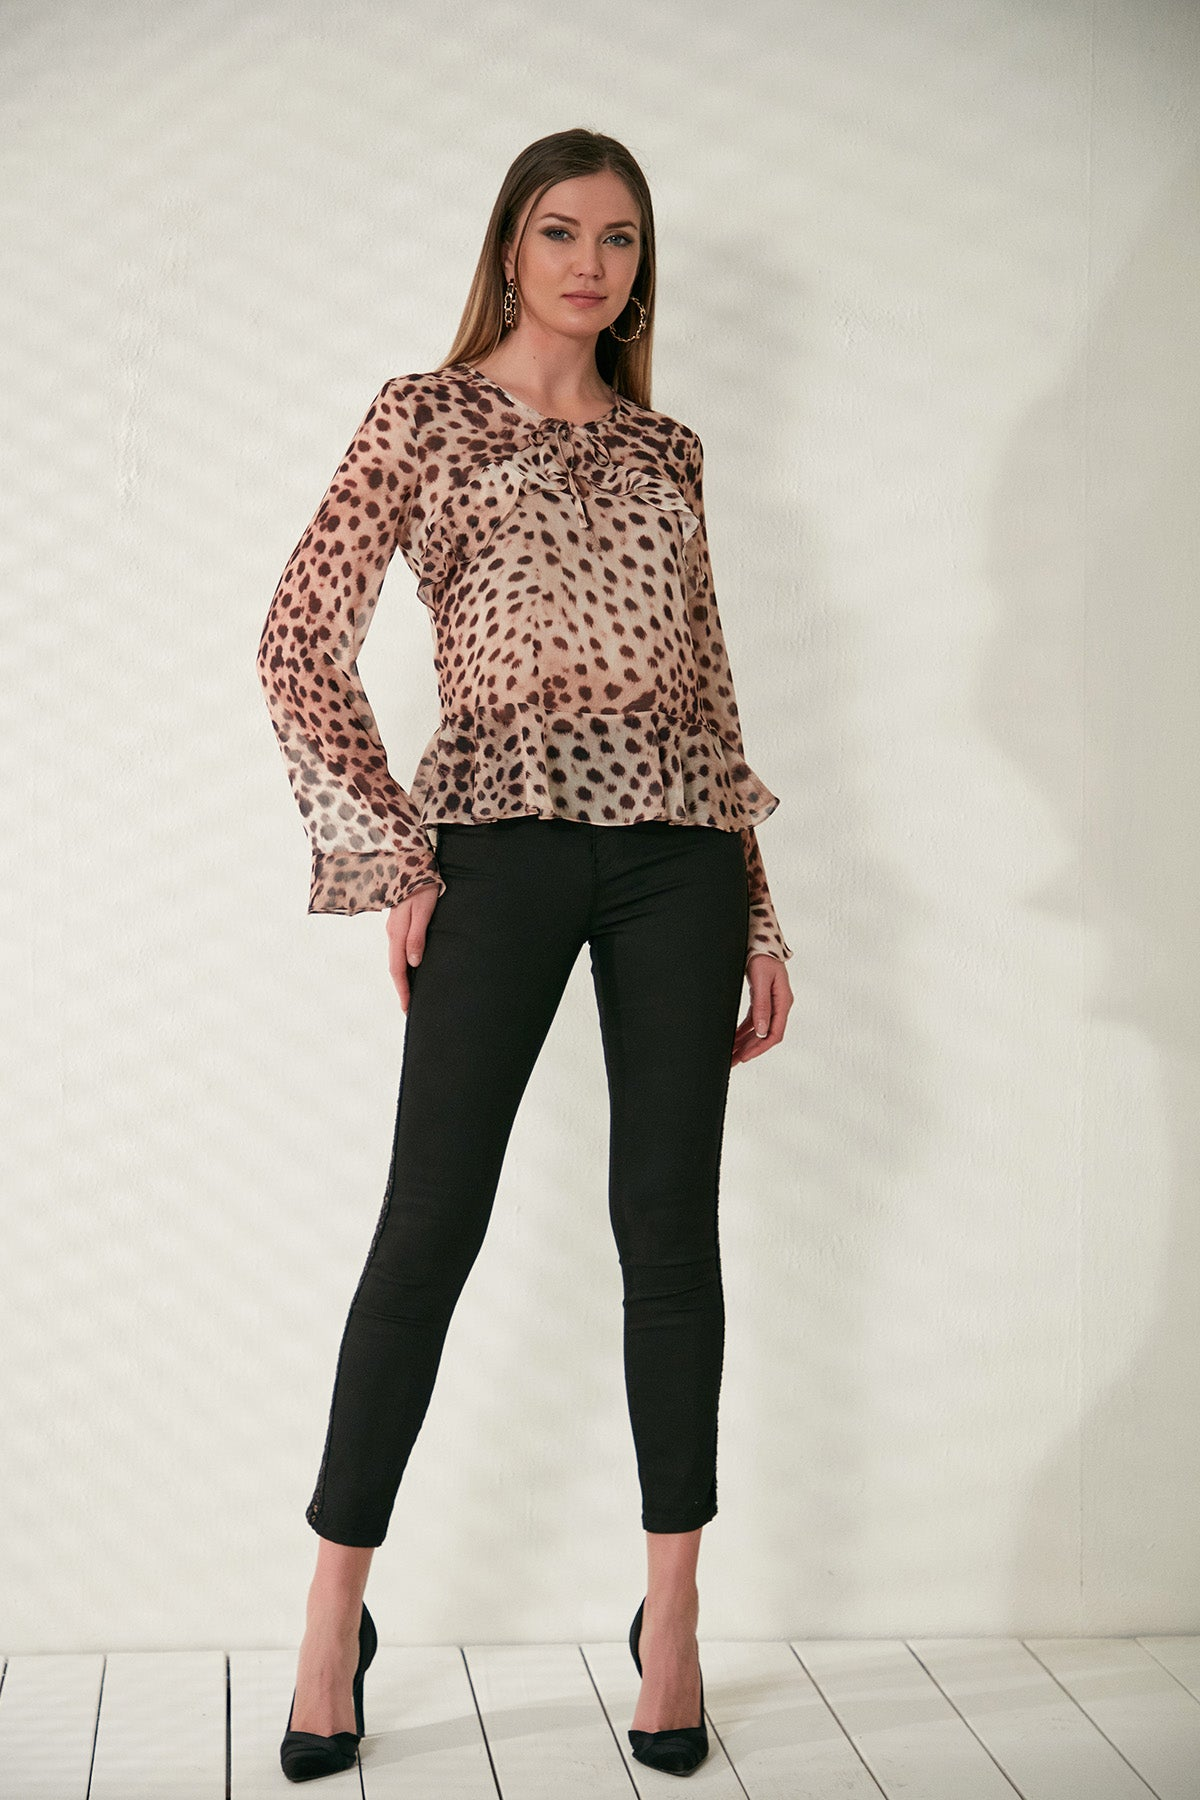 Leopard top with Frill